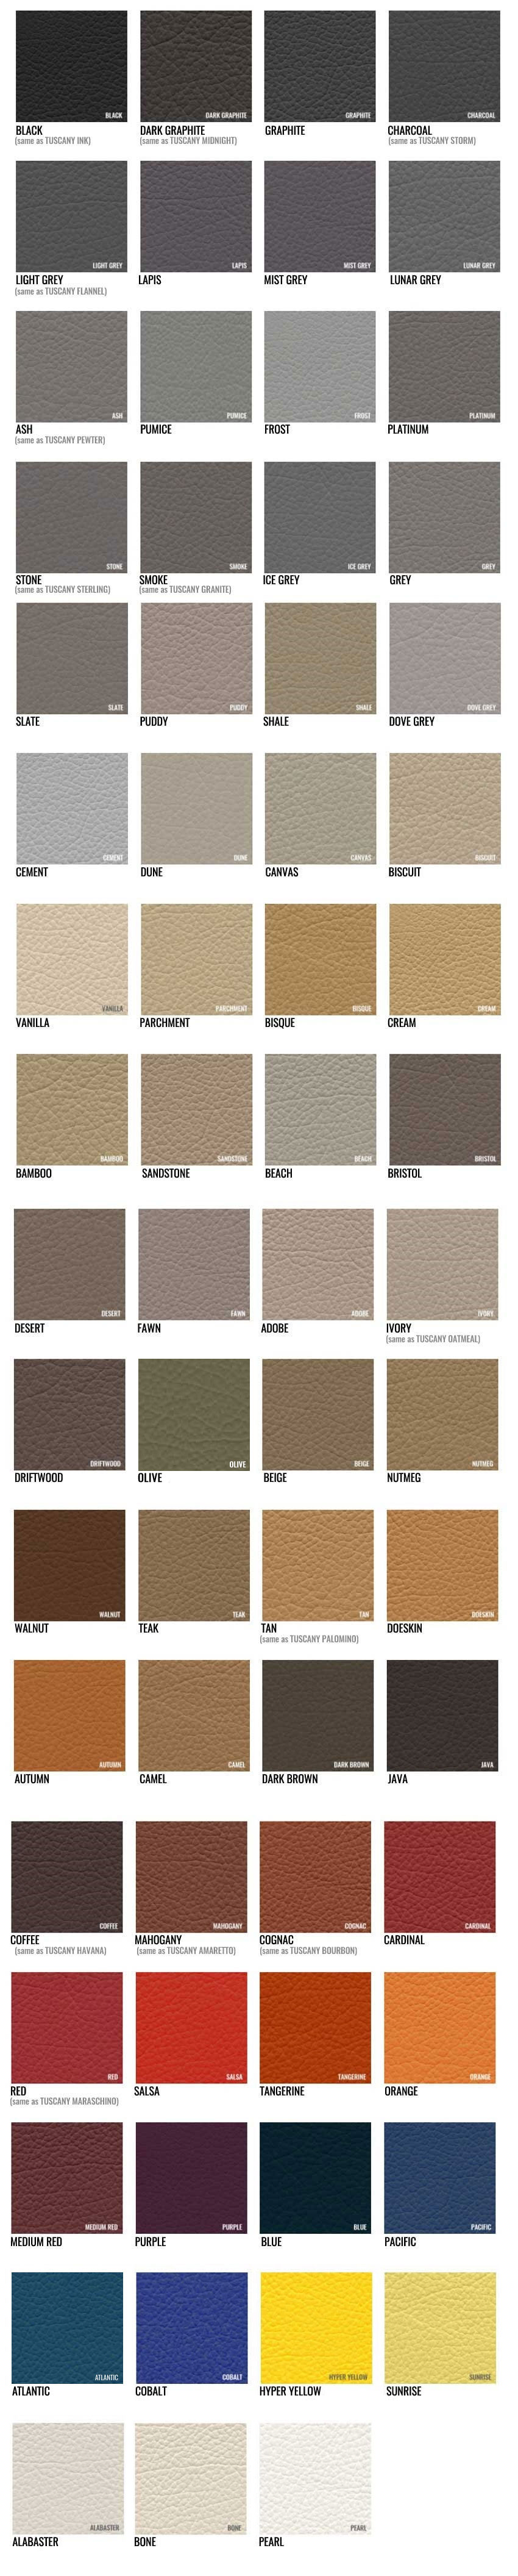 Katzkin Color  Samples - Get the perfect color for your auto upholstery upgrade